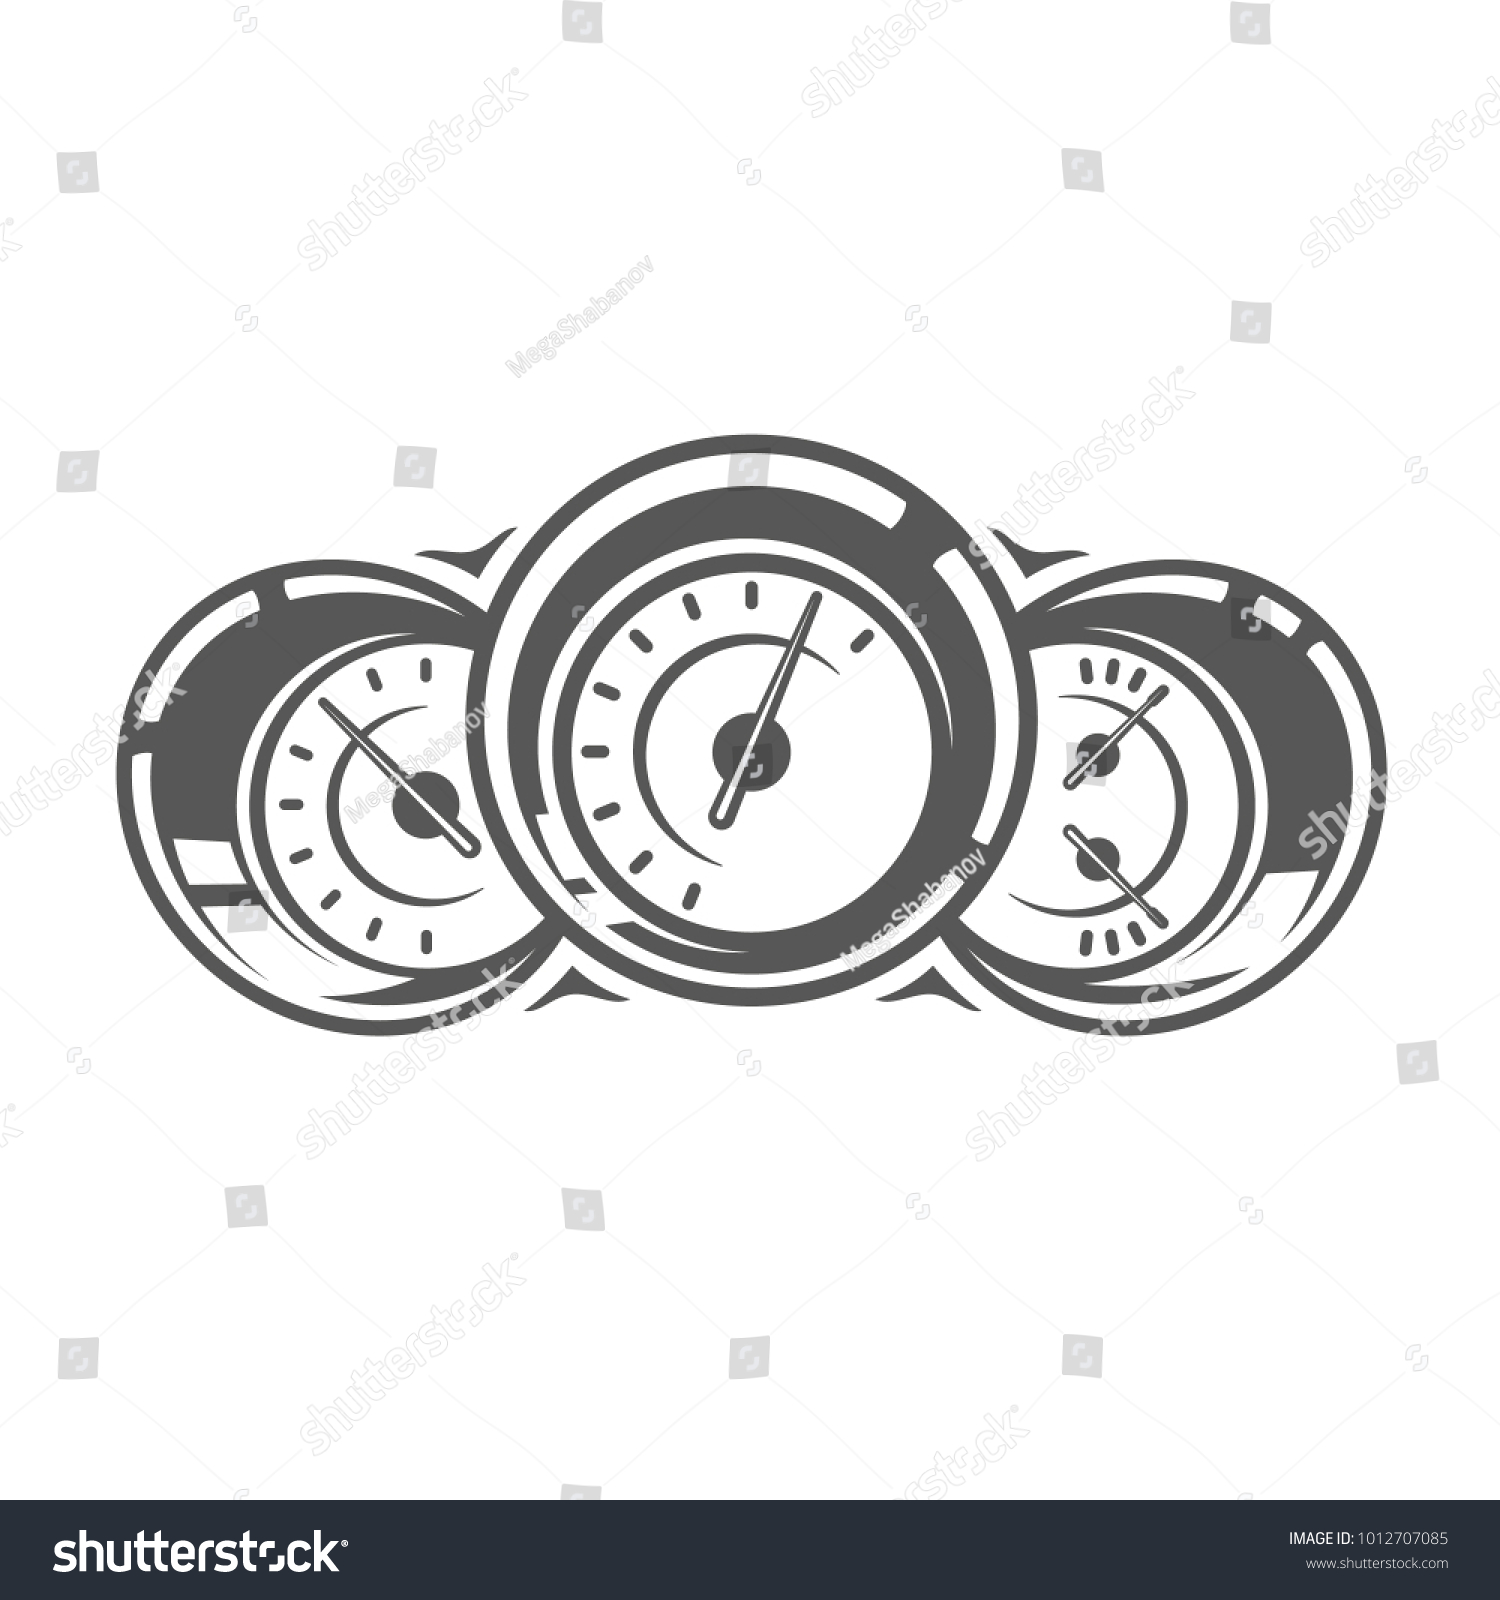 Element car service speedometer isolated on stock vector element of the car service speedometer isolated on white background symbol for car service biocorpaavc Choice Image